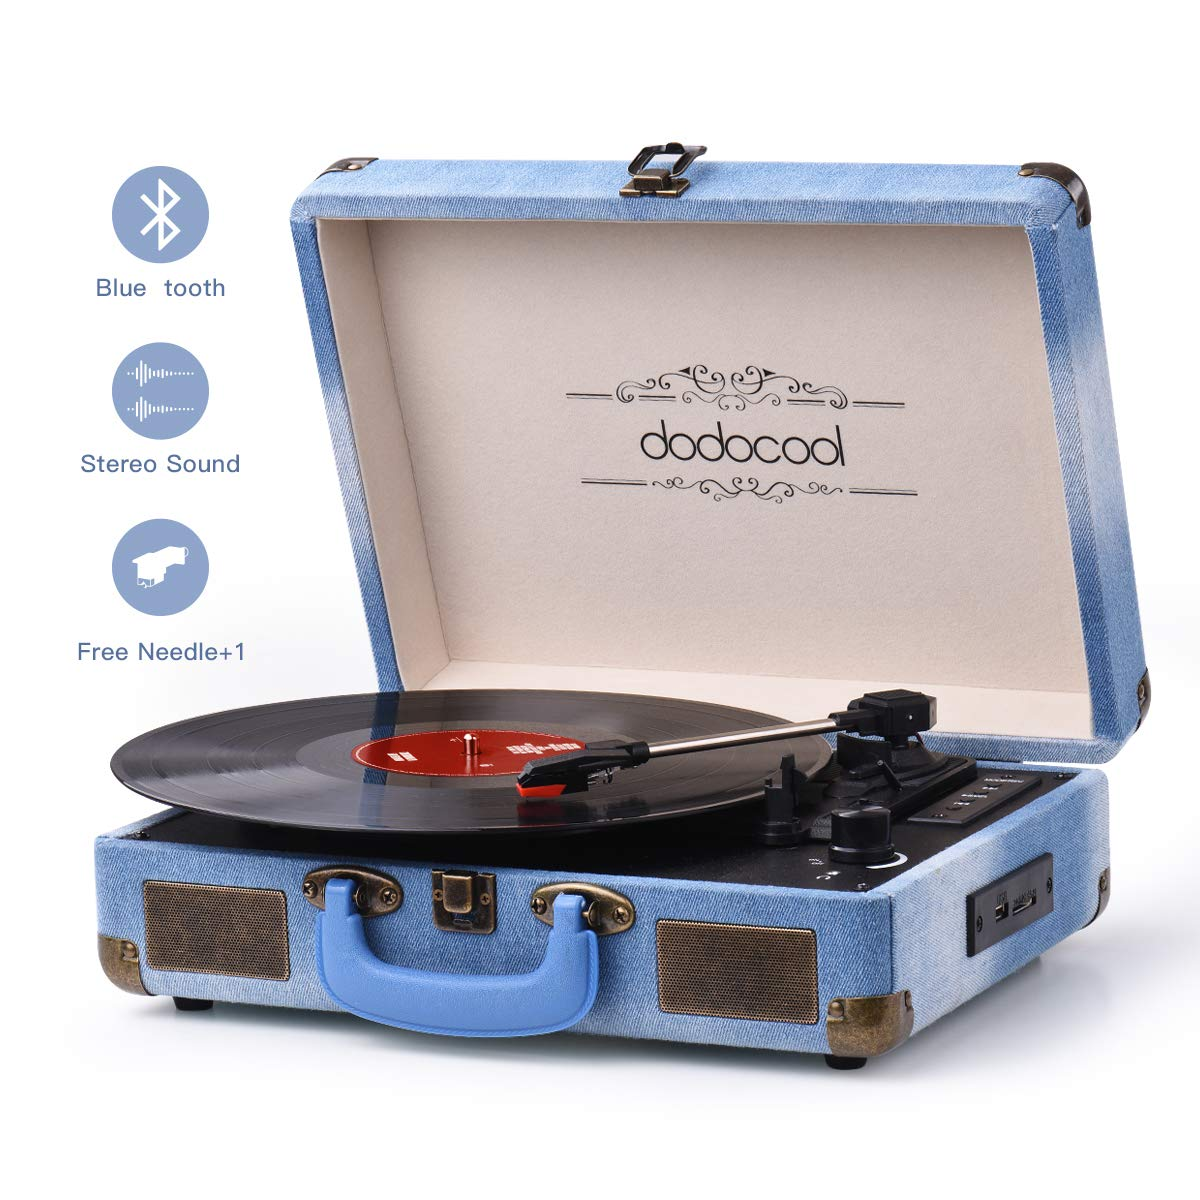 Vinyl Record Player, dodocool Vintage Turntable 3-Speed with Blue Tooth, Built in 2 Stereo Speakers, Vinyl to MP3 Converting/ RCA Line Out/ AUX / USB/ SD Input - Jean Style by dodocool